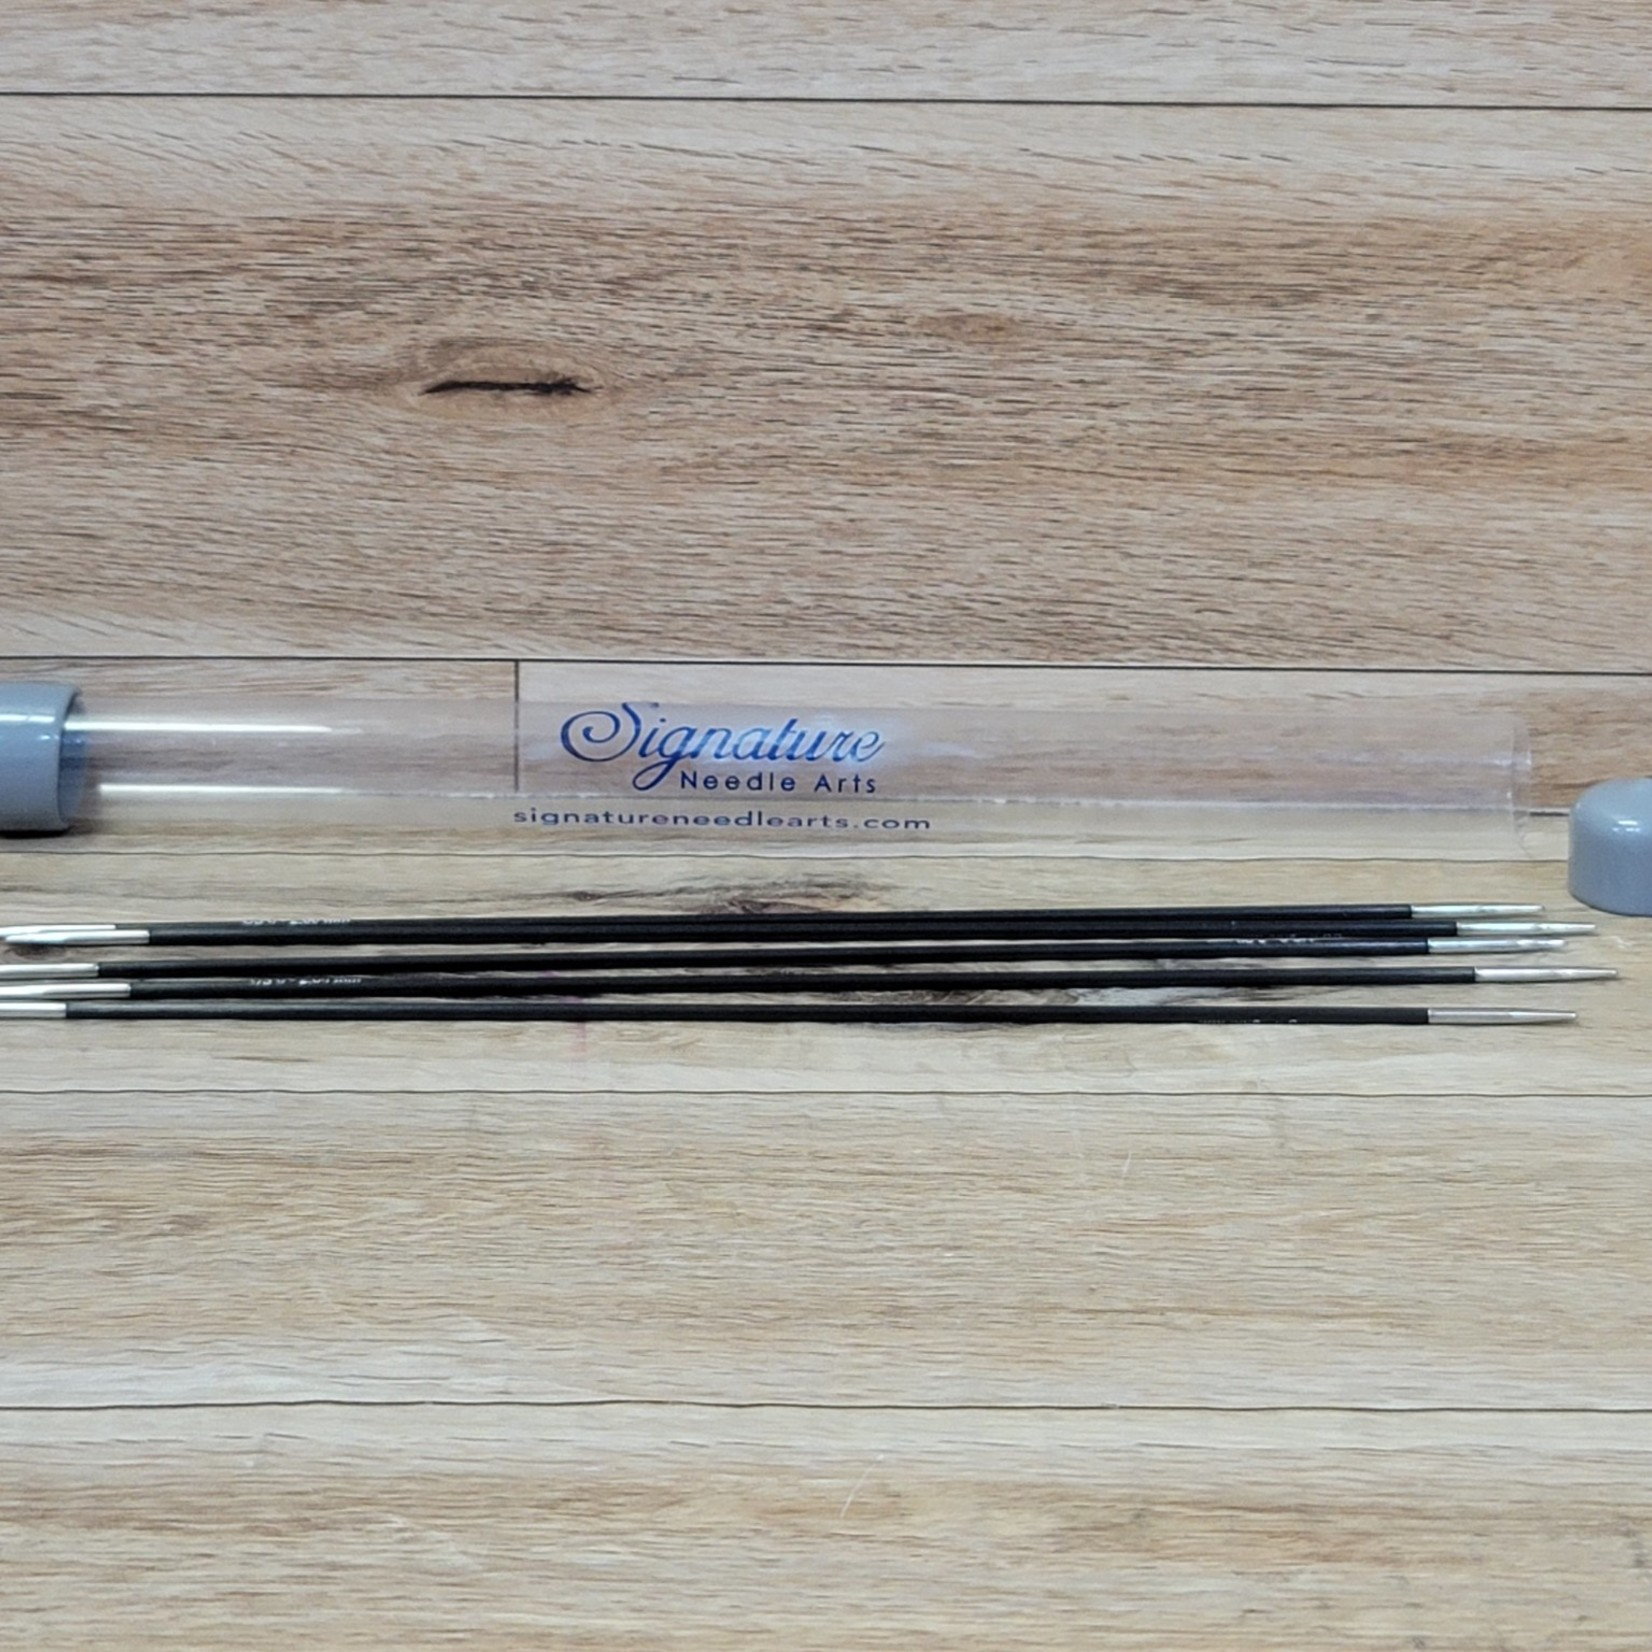 Knitter's Pride Karbonz -   Set of 5 double pointed knitting needles - US 1.5 - 2.50mm